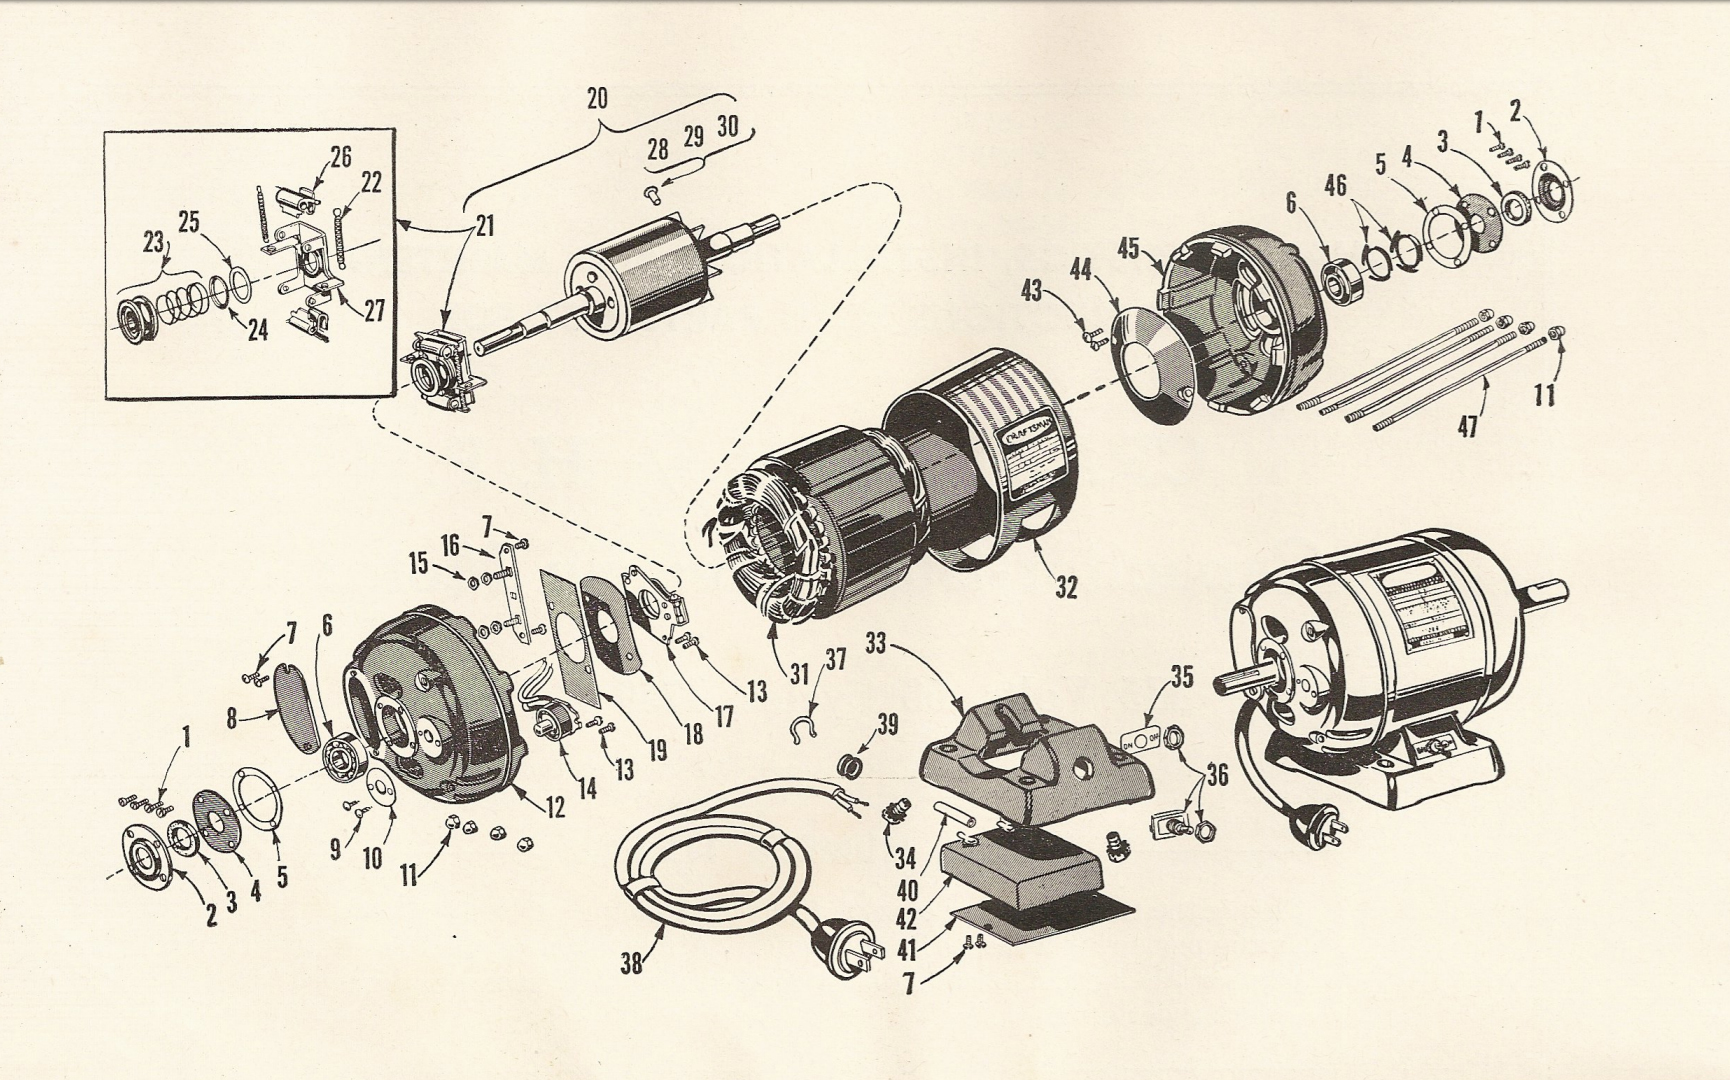 hight resolution of craftsman 115 6962 1 2 hp capacitor start electric motor diagram source